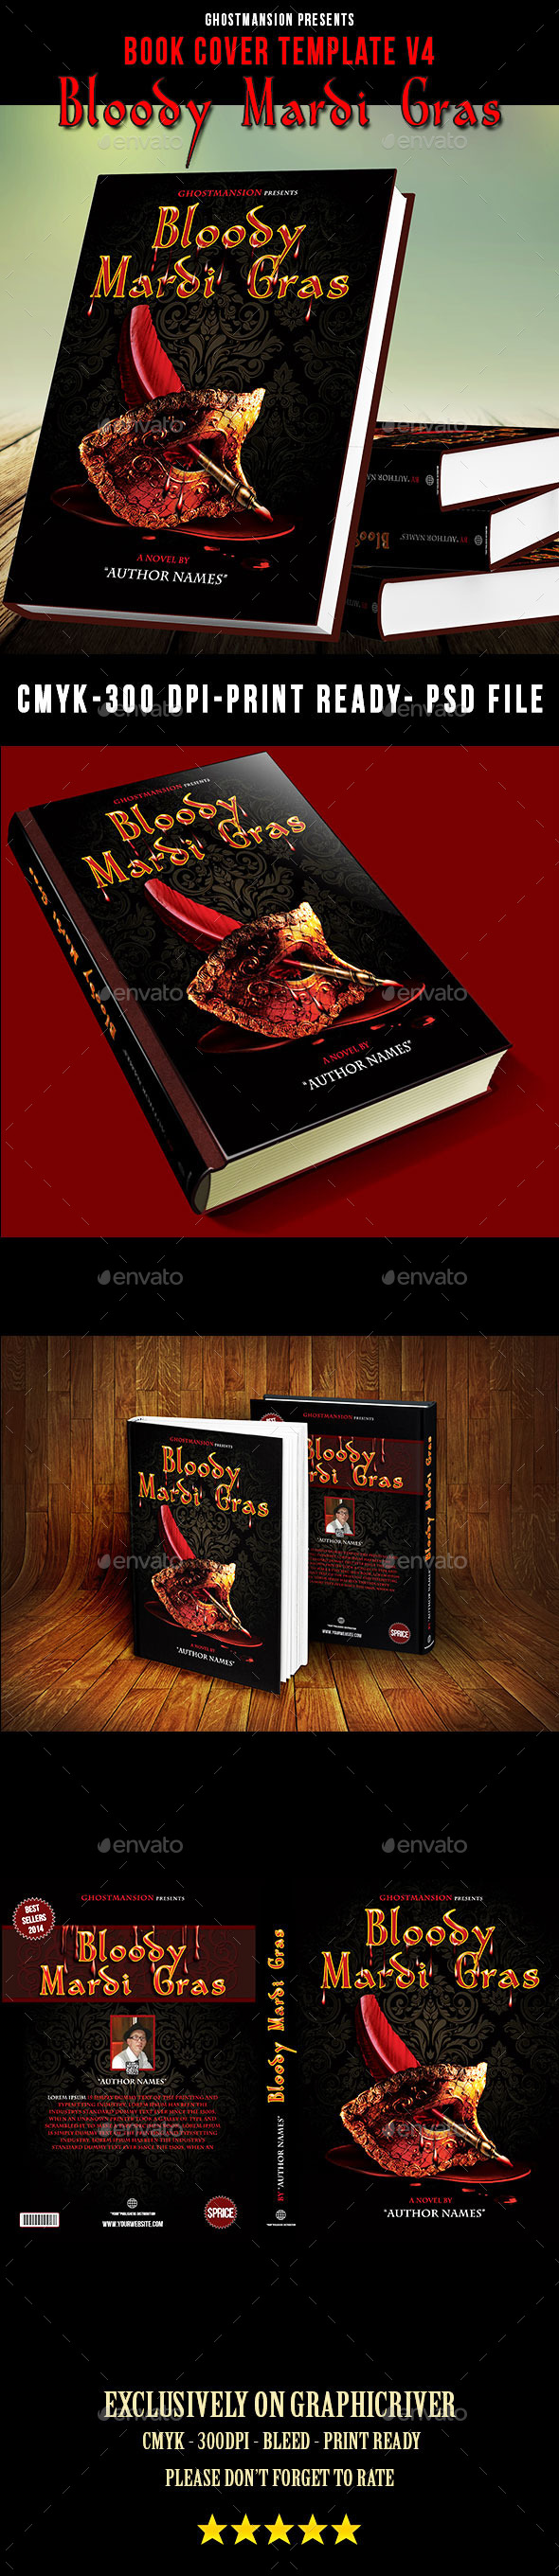 Book Cover Template V4